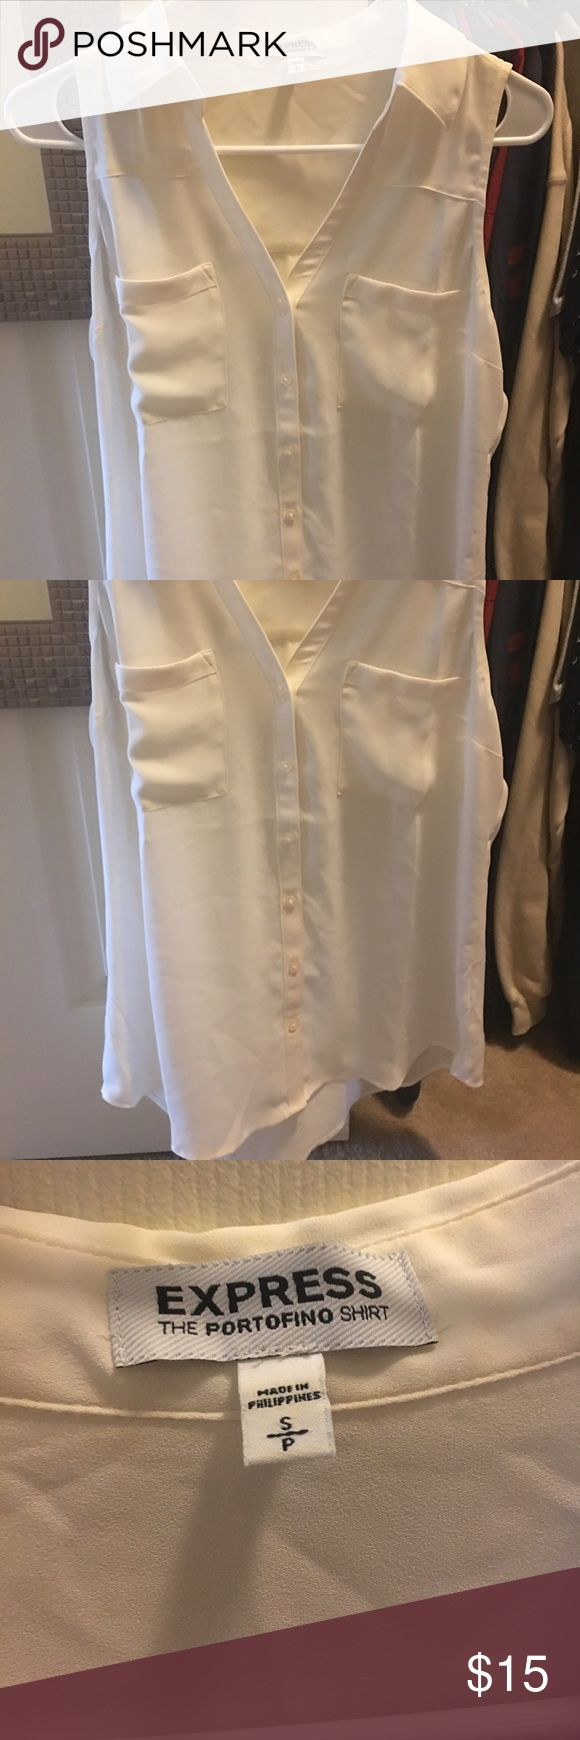 Express sleeveless blouse (Small) Good used condition. Great for warm weather or cooler weather under a cardigan. Express Tops Button Down Shirts